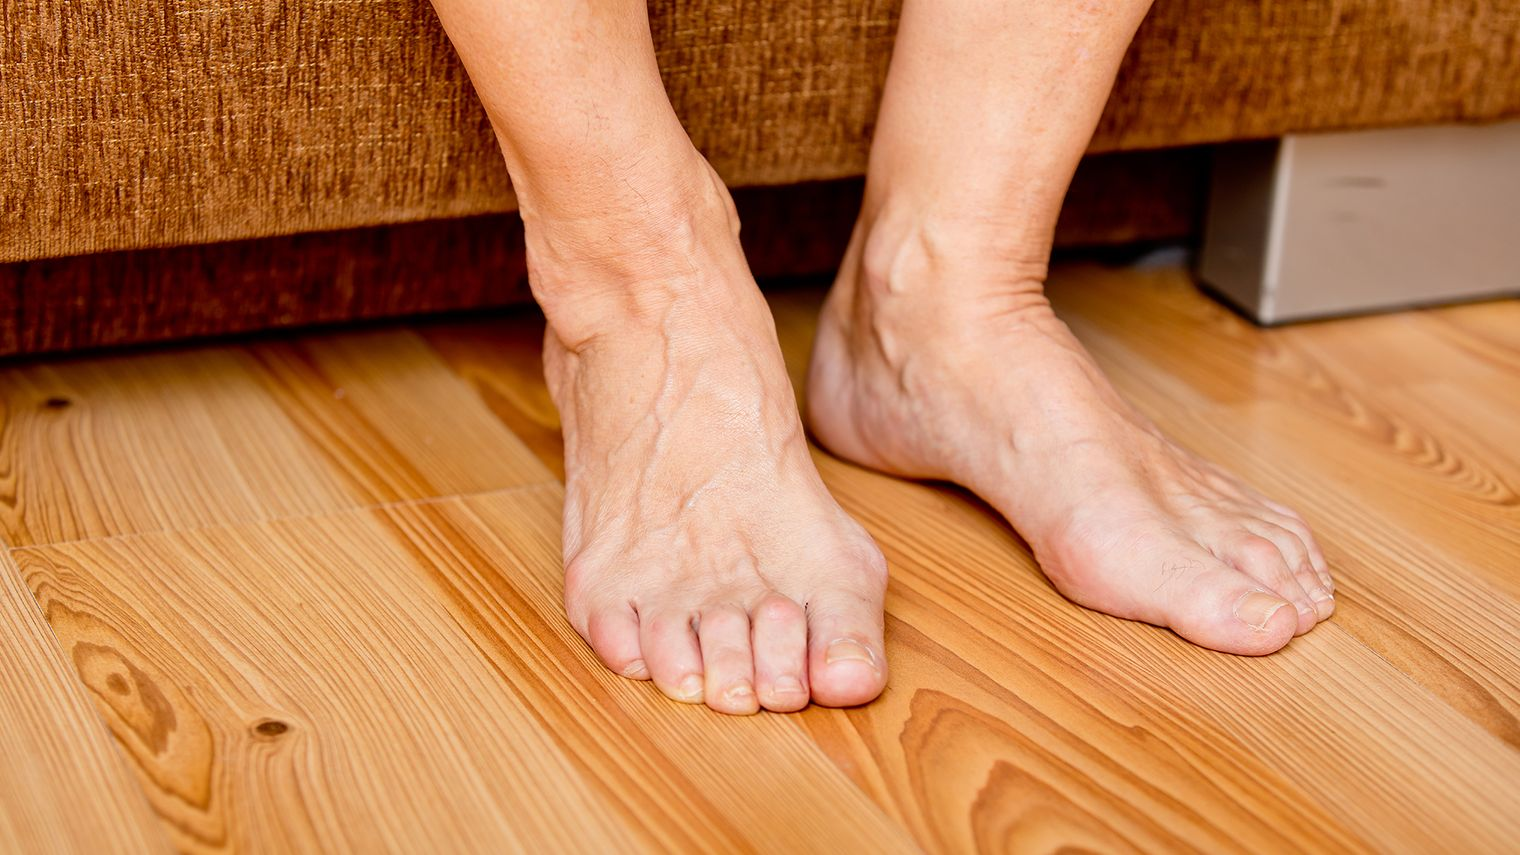 Close-up picture of two bare feet of a person sitting down planted on floor.